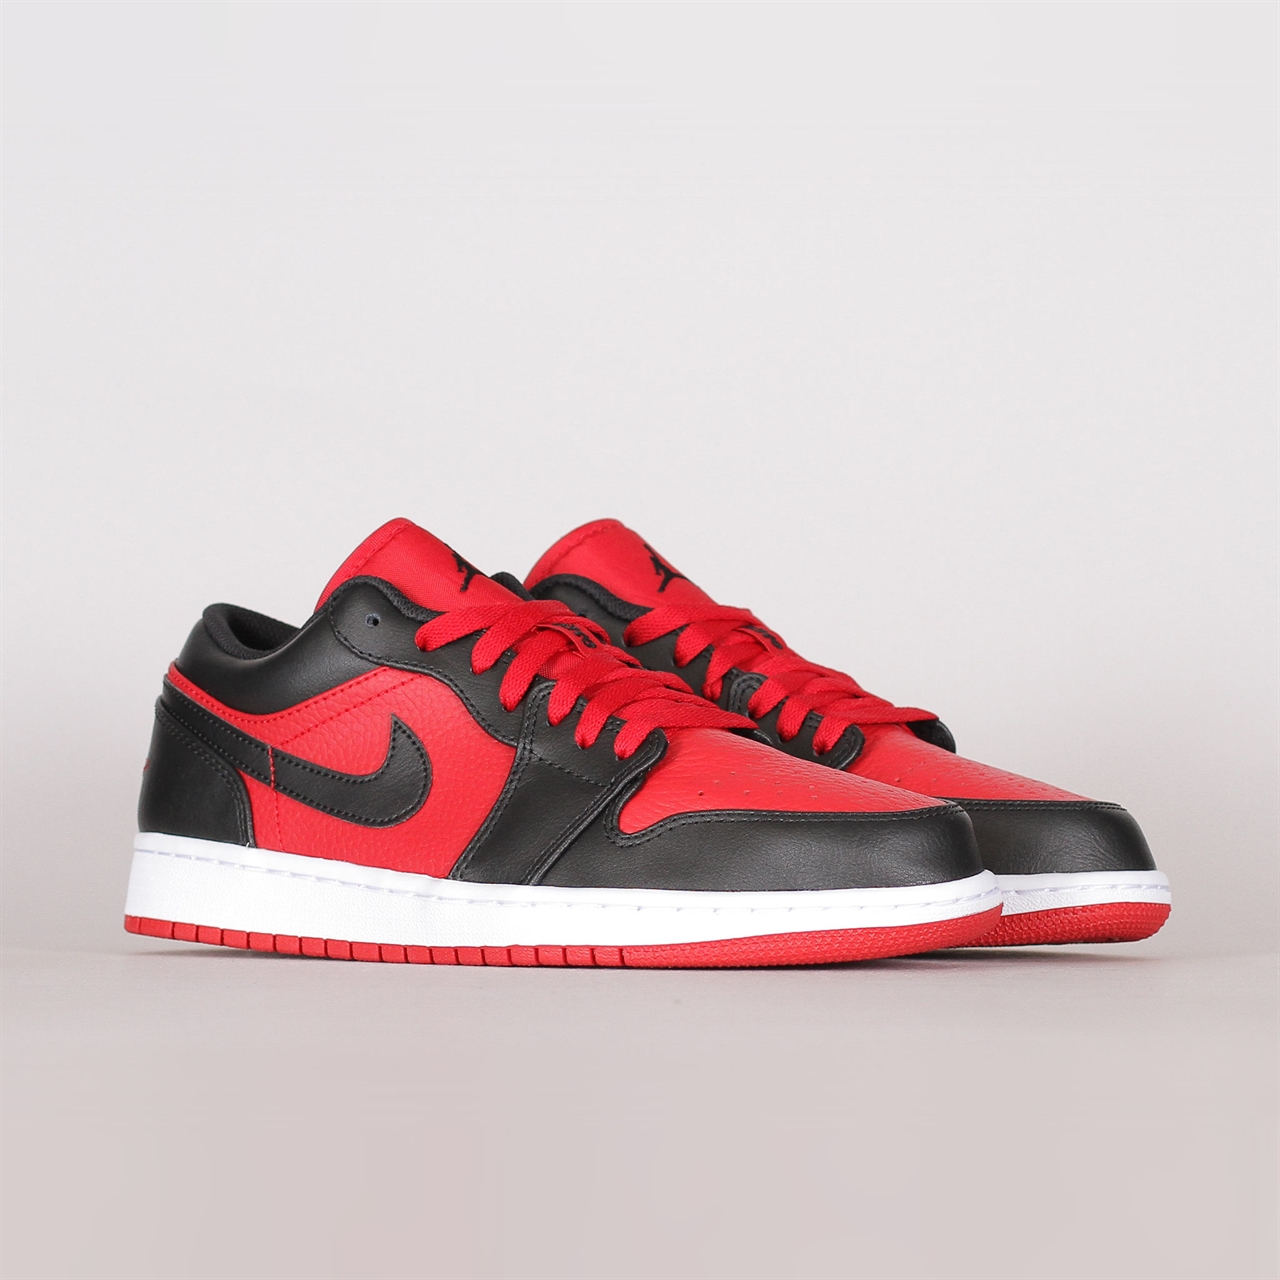 5c248a3505d Shelta - Nike Air Jordan 1 Low (553558-610)